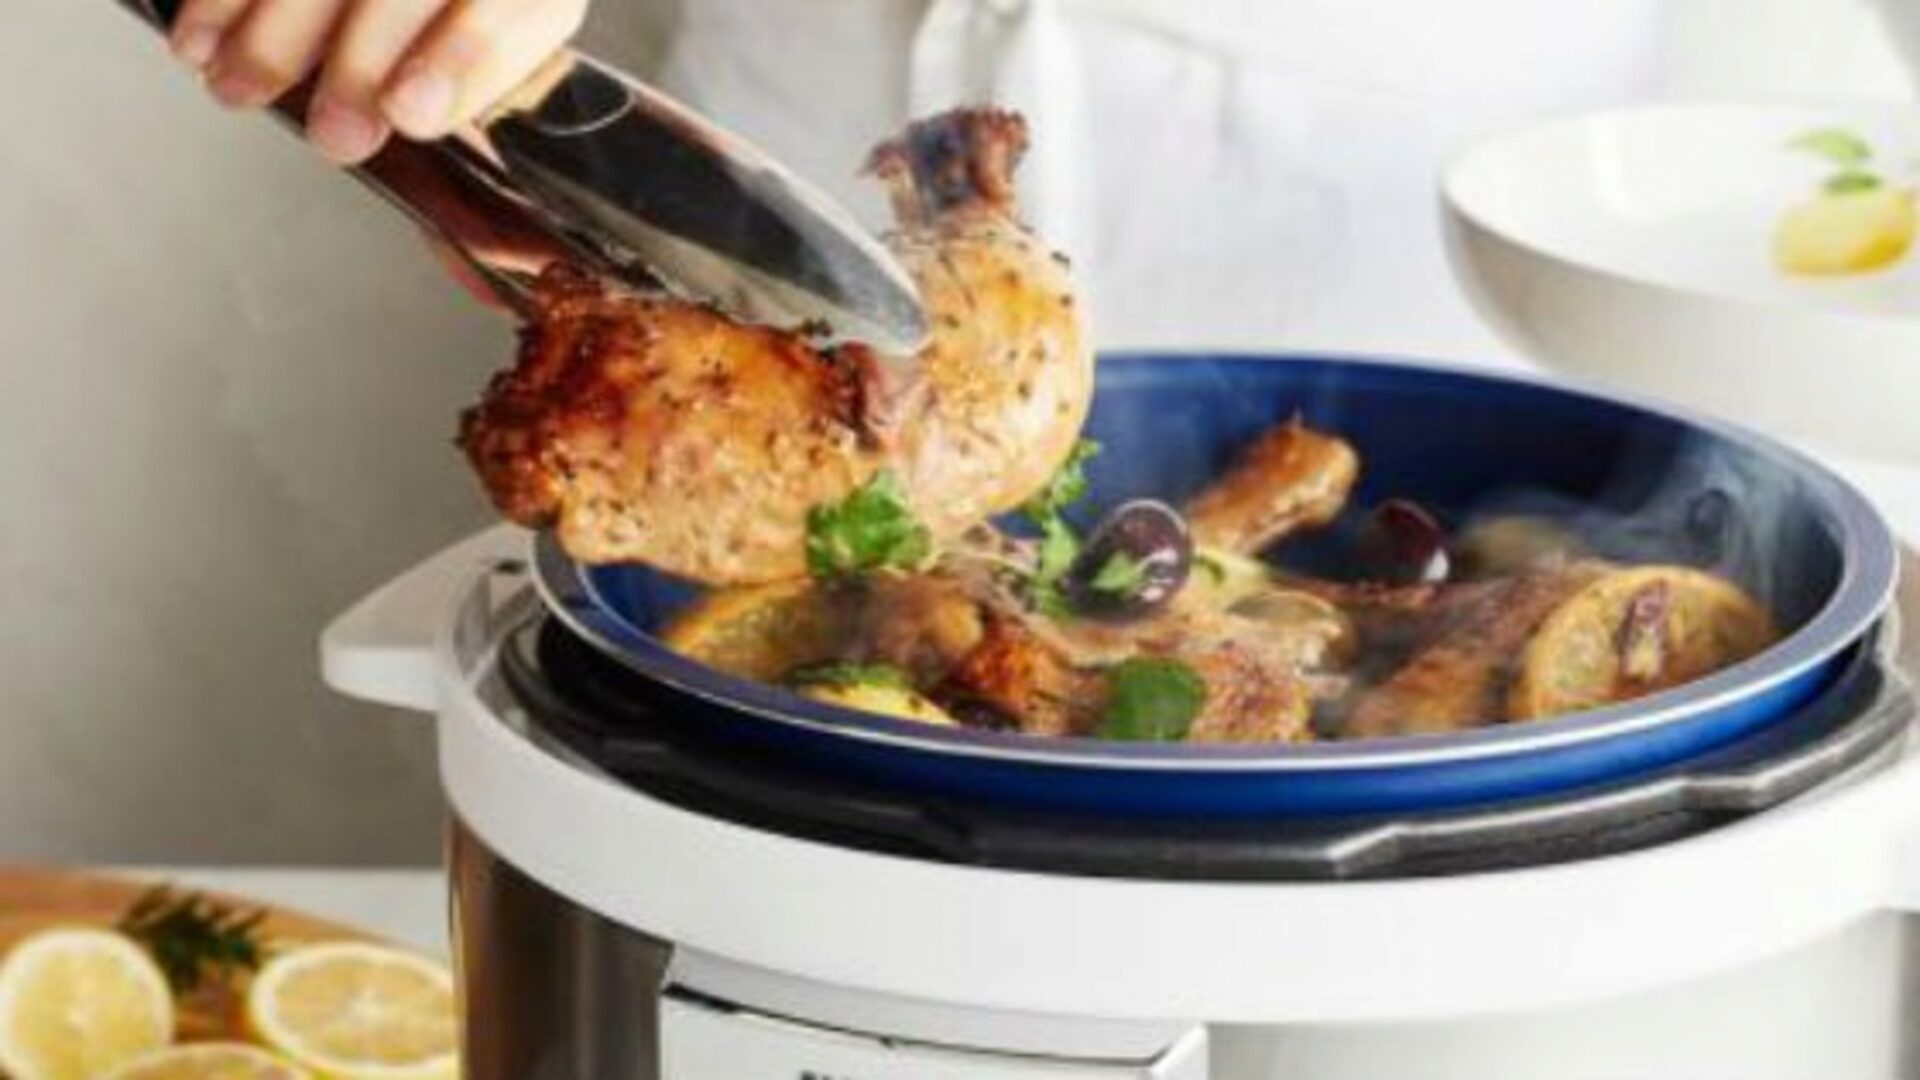 Chicken in the slow cooker is prepared quickly and simply